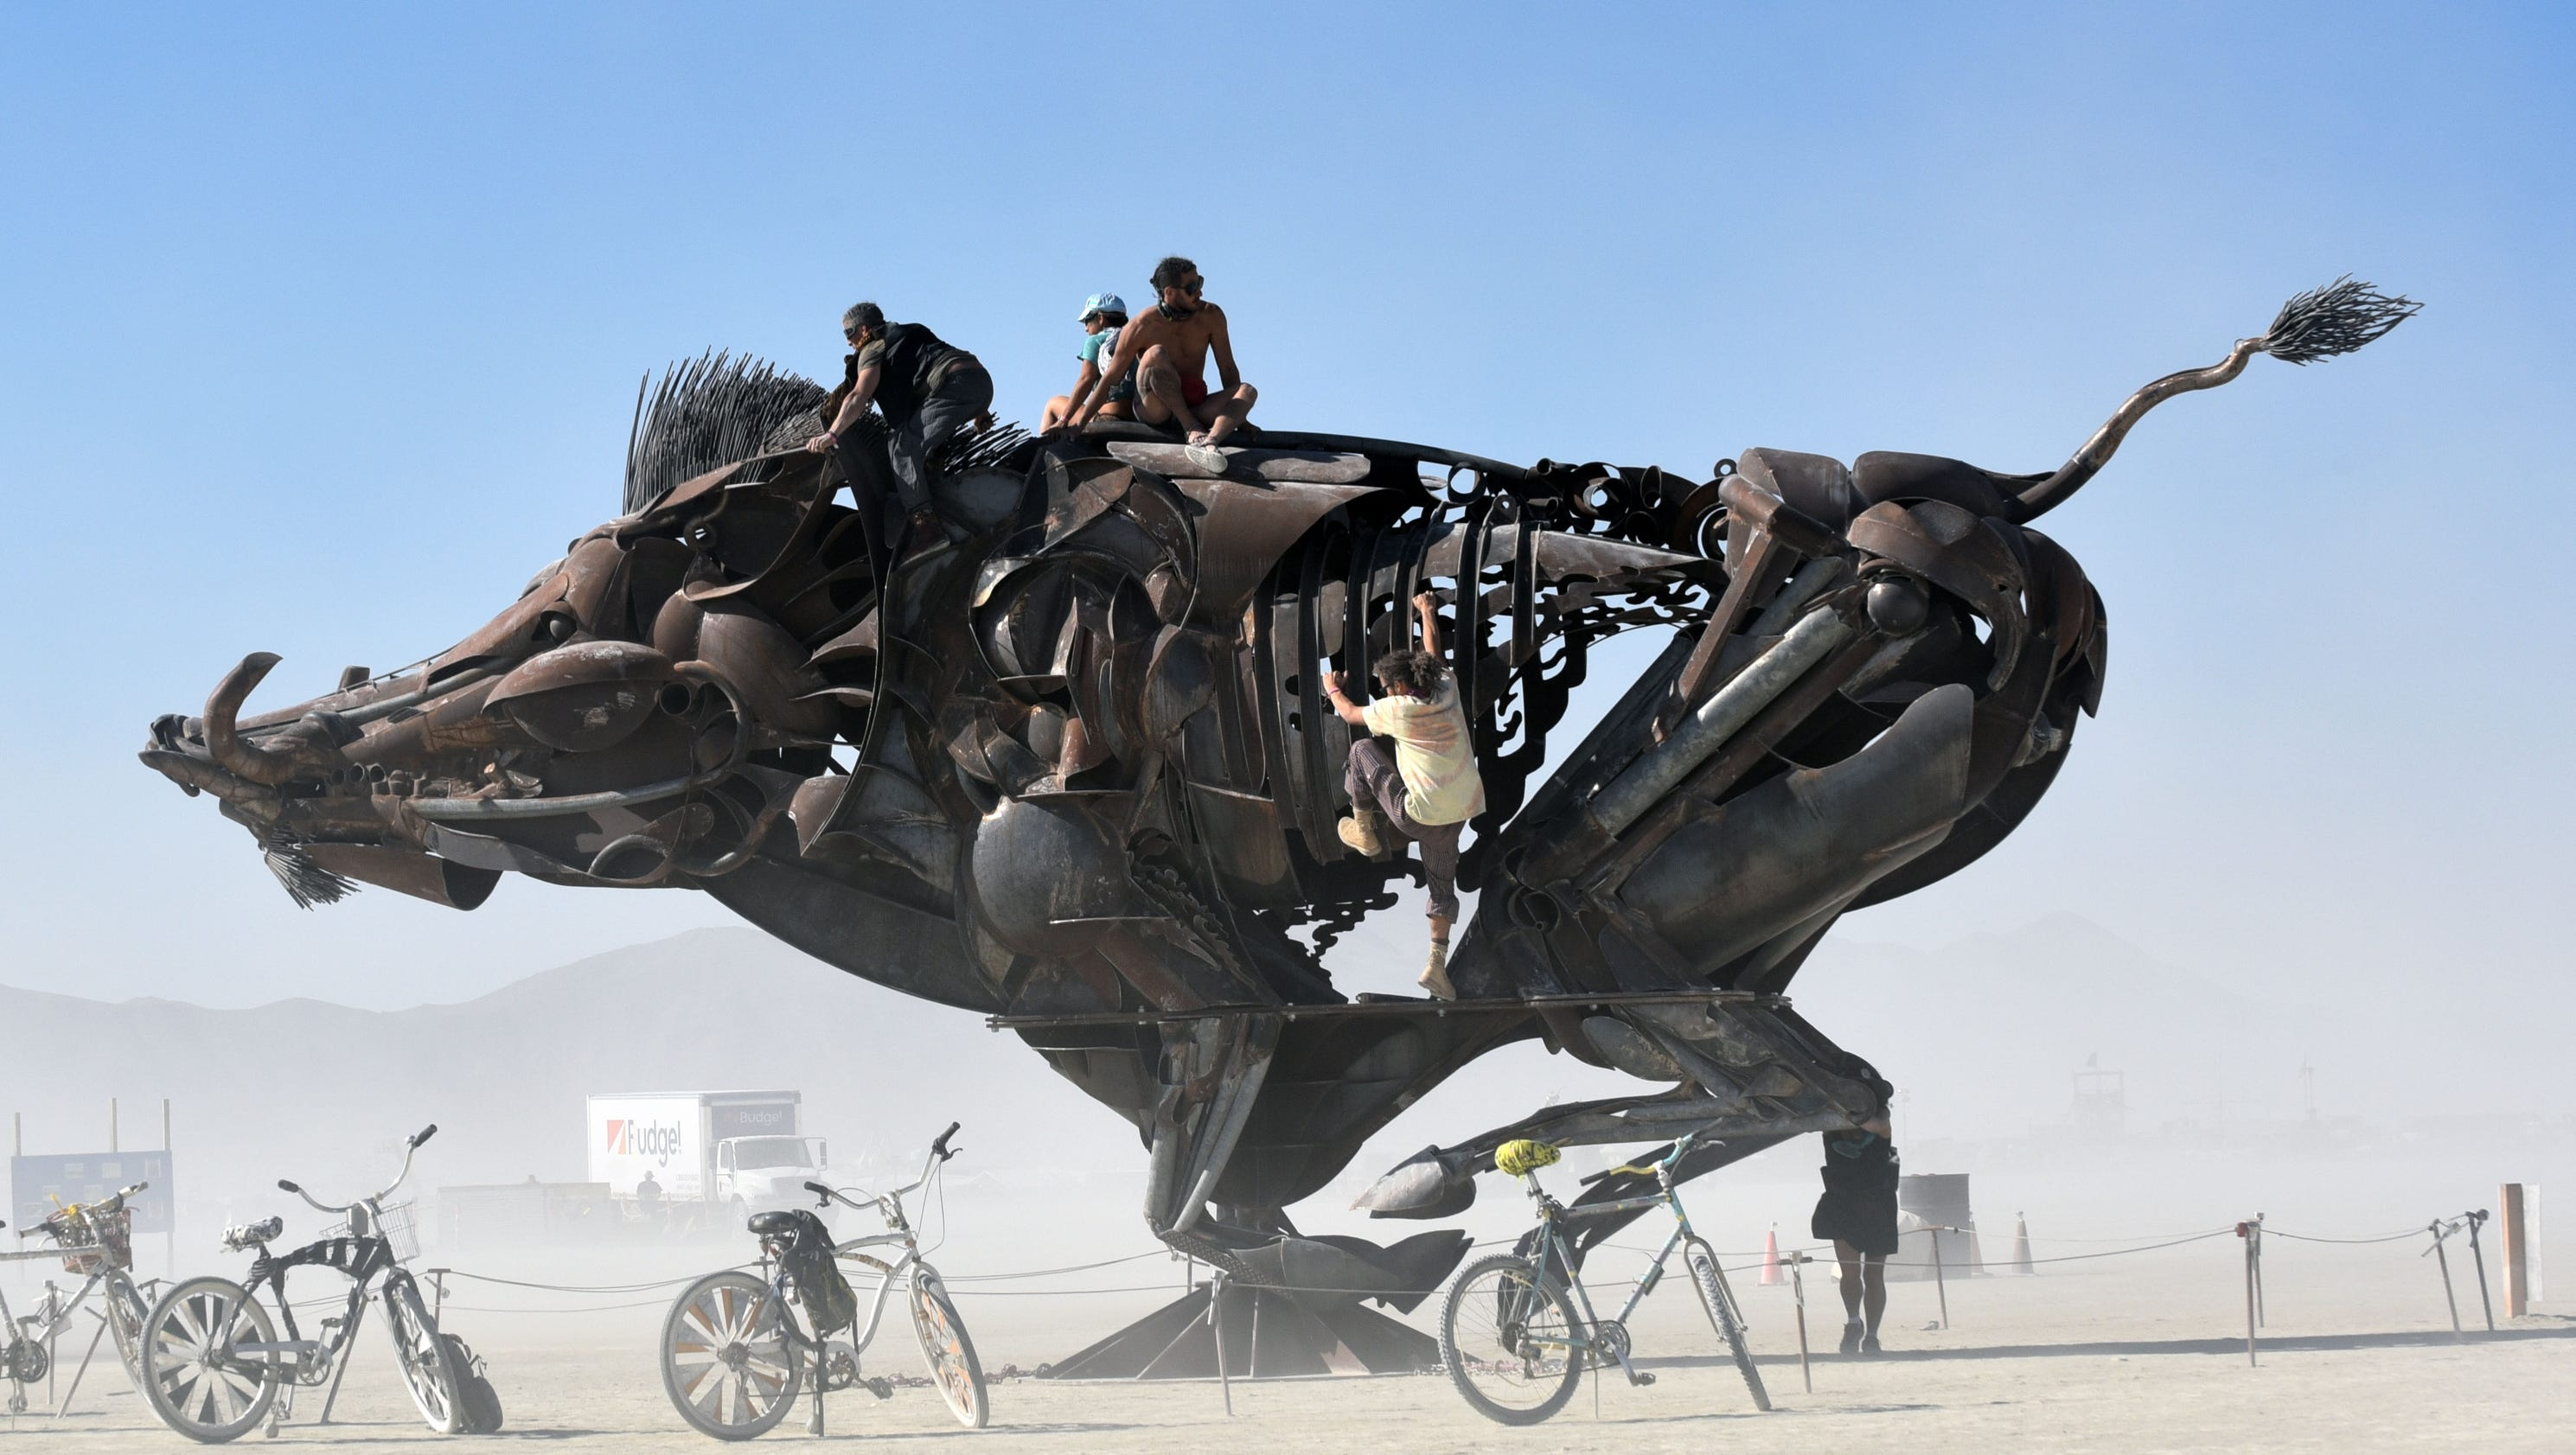 Burning Man in photos, from the fabulous to the far-out